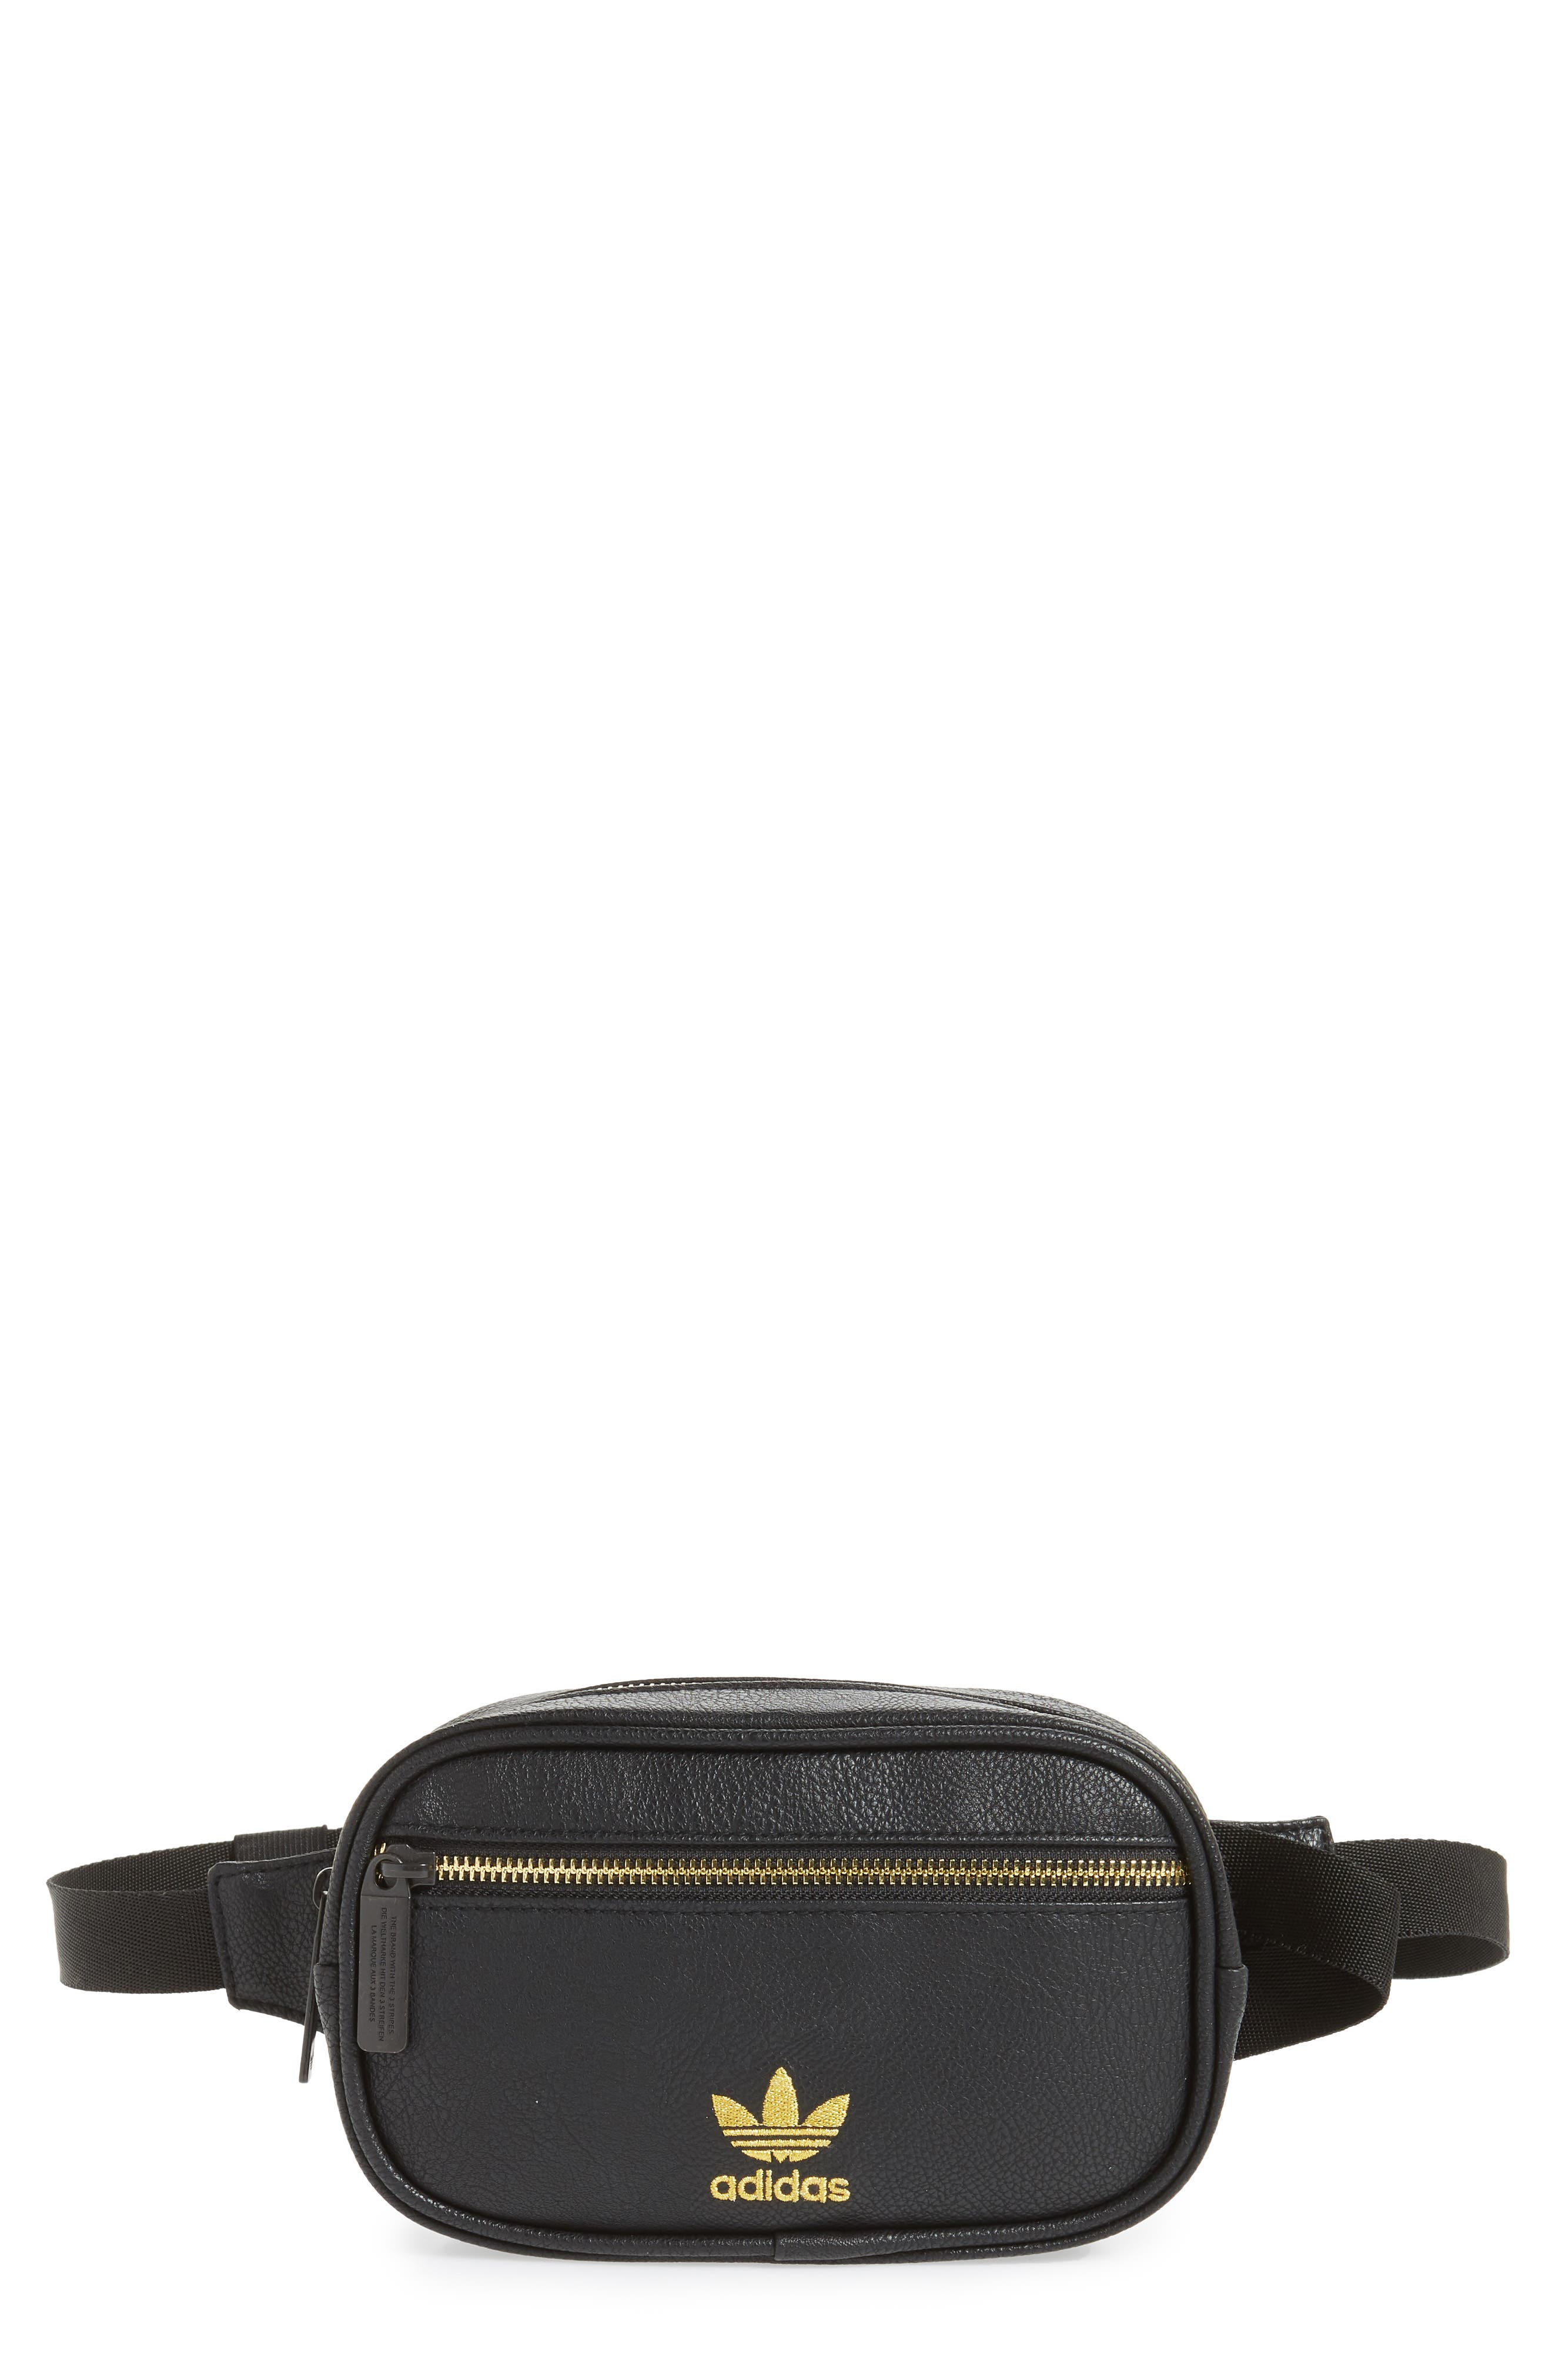 adidas Ori Faux Leather Fanny Pack,                         Main,                         color, 001